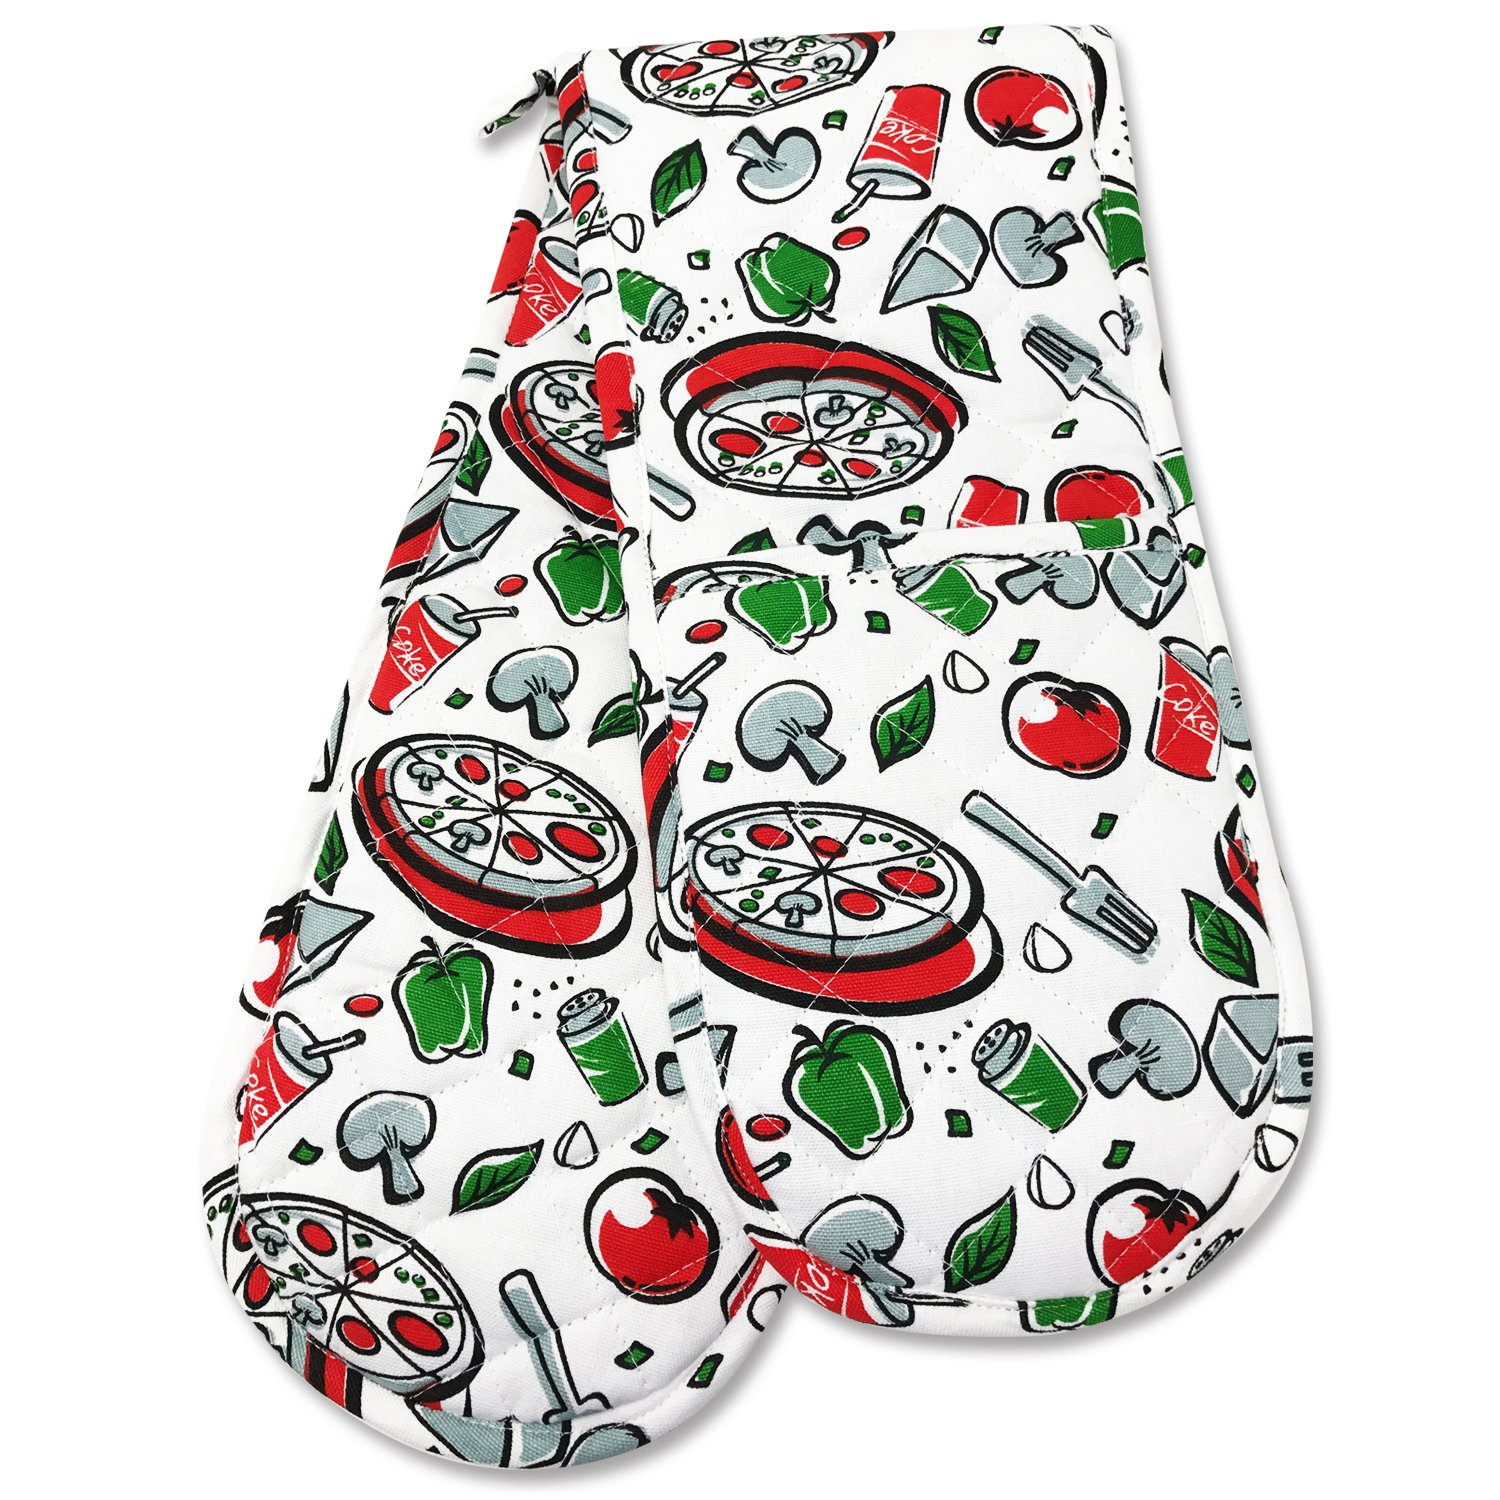 Smart Home, Fun Coke Pizza, 1 Piece, Long Double Oven Mitts Gloves, Heat Resistant, 100% Cotton, Extra Thick, Quilted